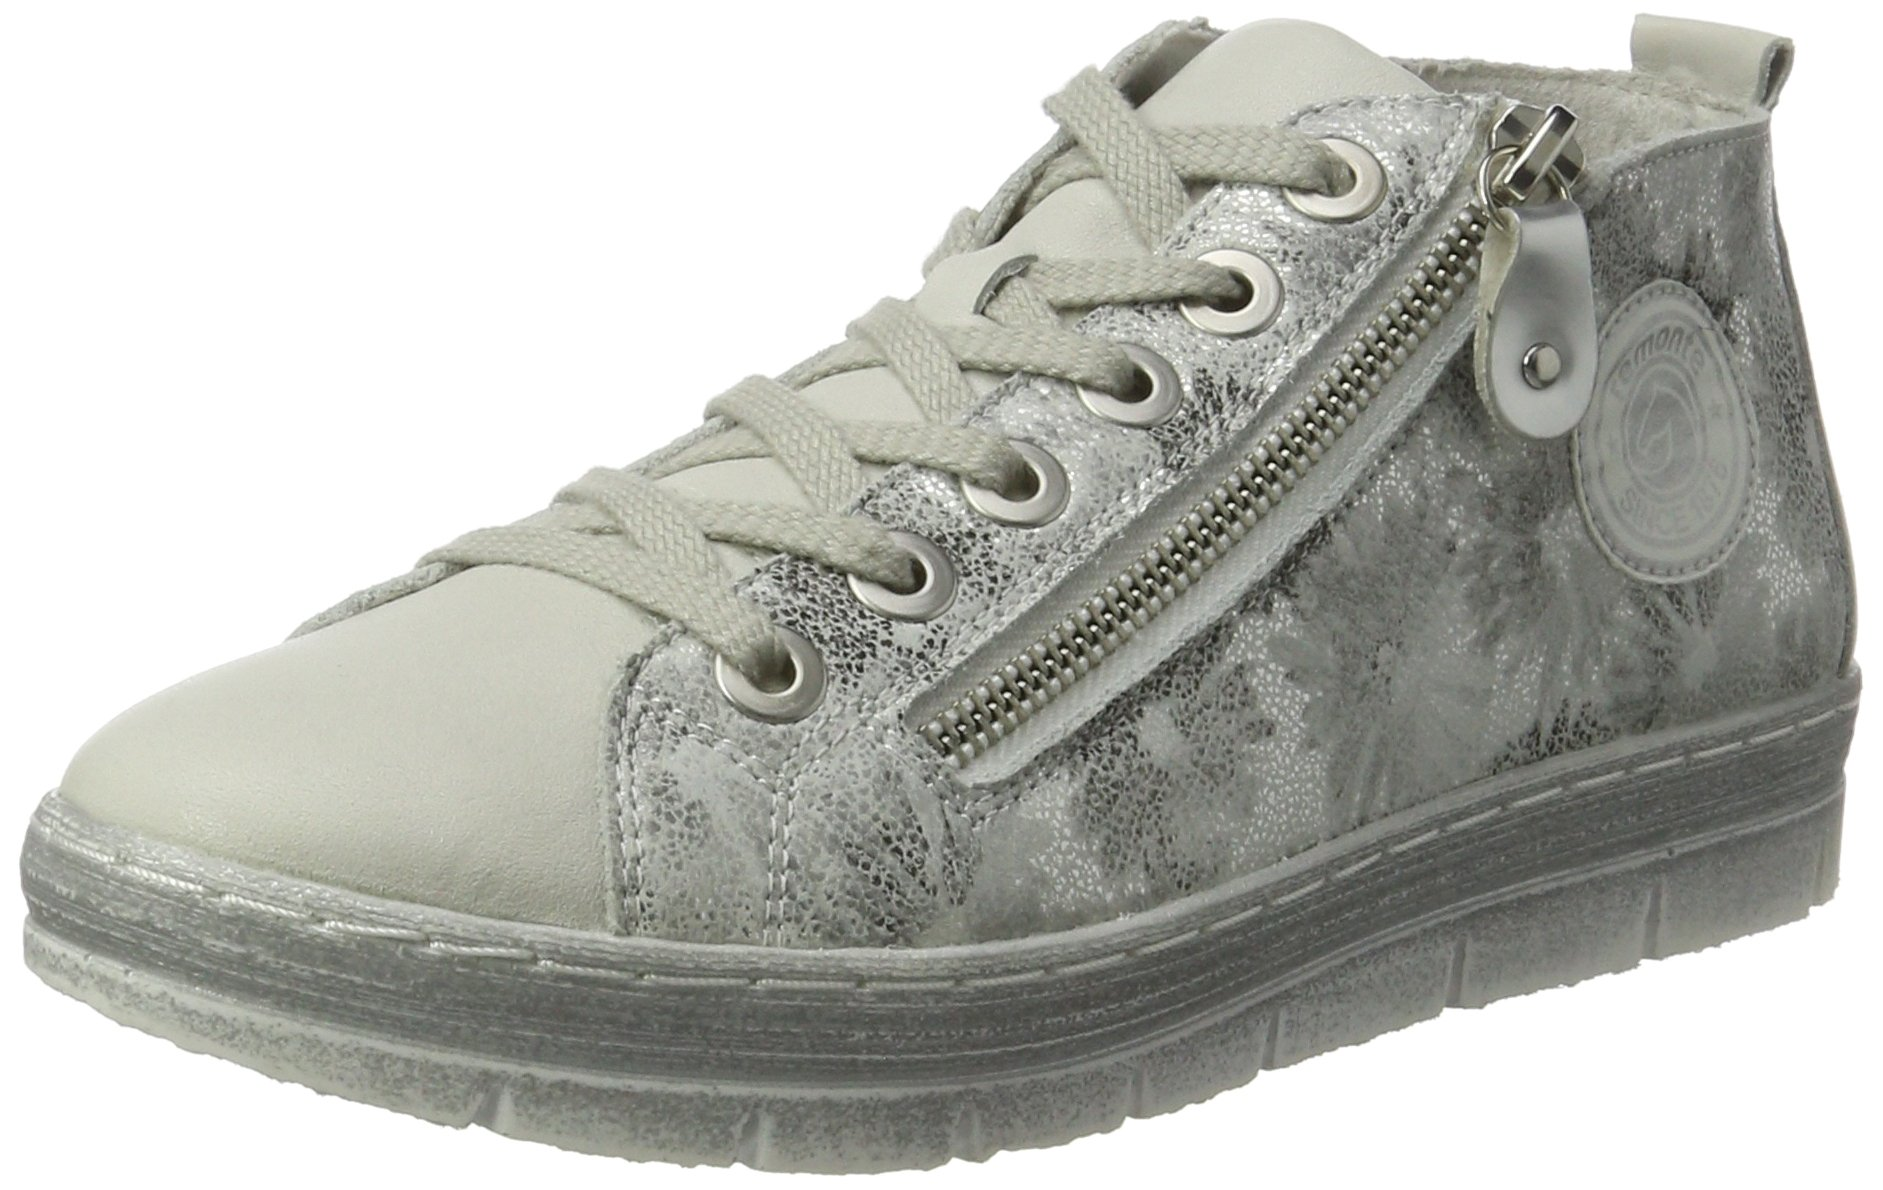 Remonte weiss weiss 8038 D5870Sneakers FemmeArgentoffwhite argento Eu Hautes nwPkX80O